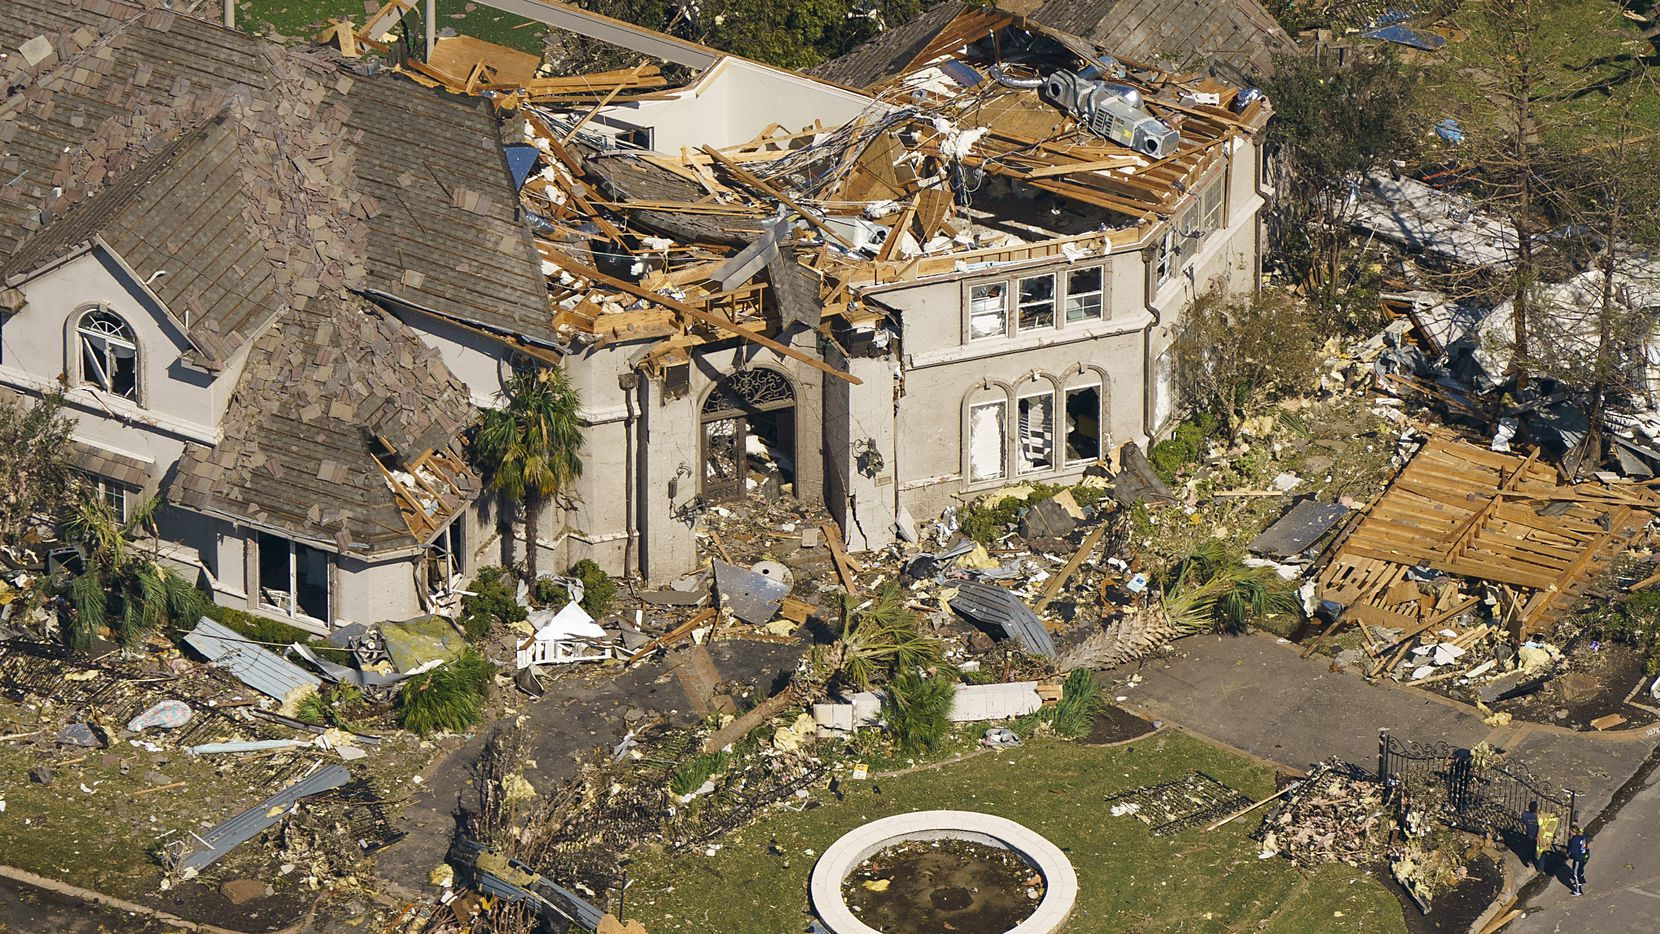 Damage is seen to a home owned by Dallas Stars NHL hockey player Tyler Seguin near the intersection of Preston and Royal in aerial view of tornado damage on Monday, Oct. 21, 2019, in Dallas. Seguin moved from the house last November, and said no one was injured. The house is currently for sale.